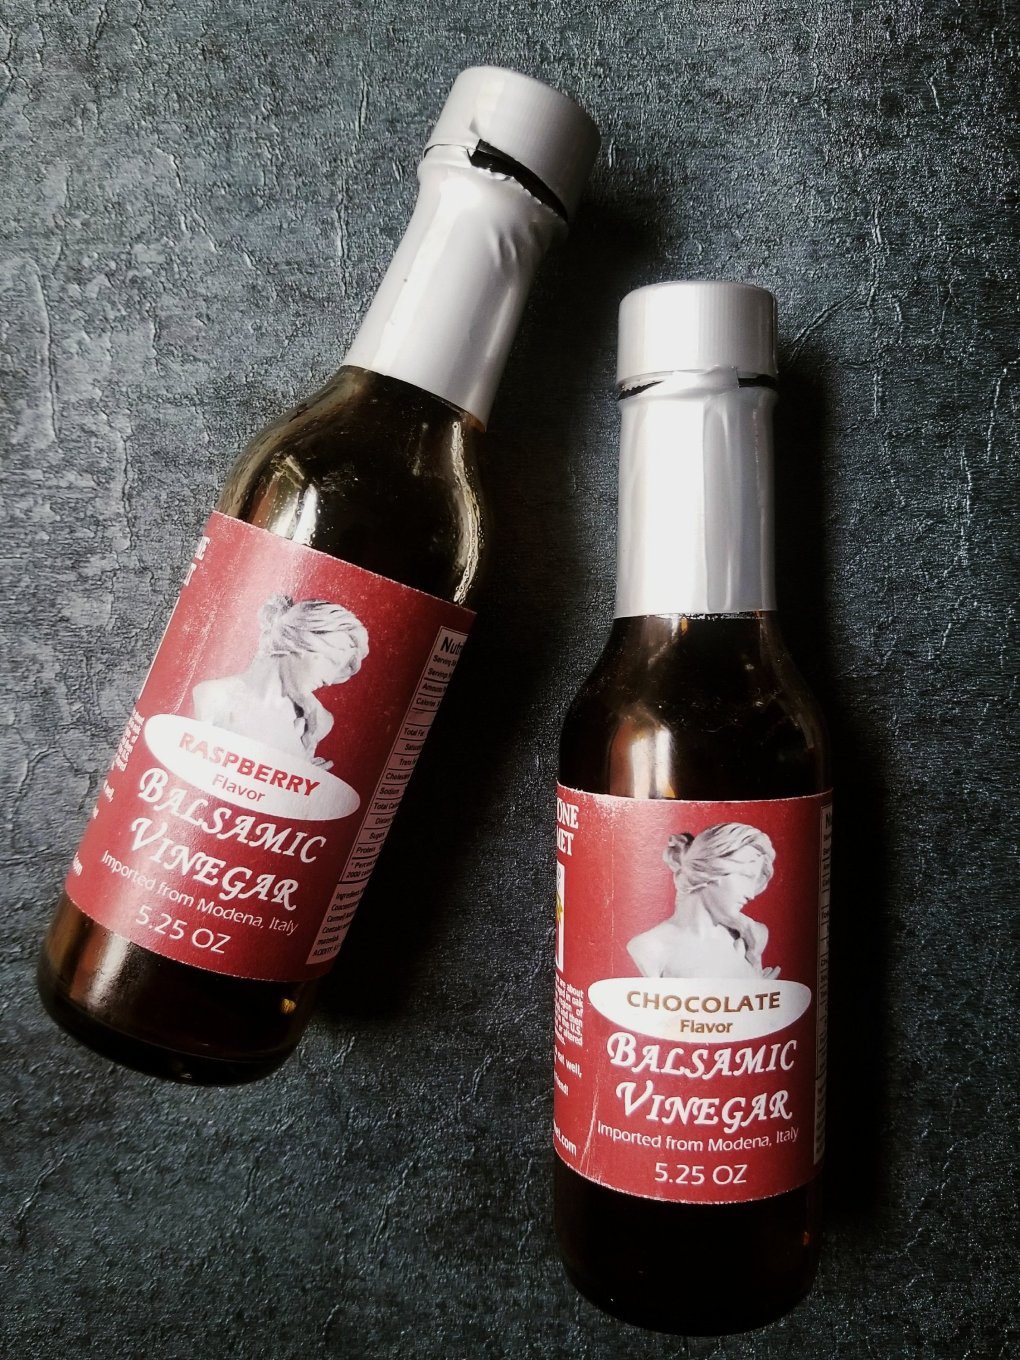 Raspberry balsamic vinegar and chocolate balsamic vinegar bottles from Devries & Company 1887